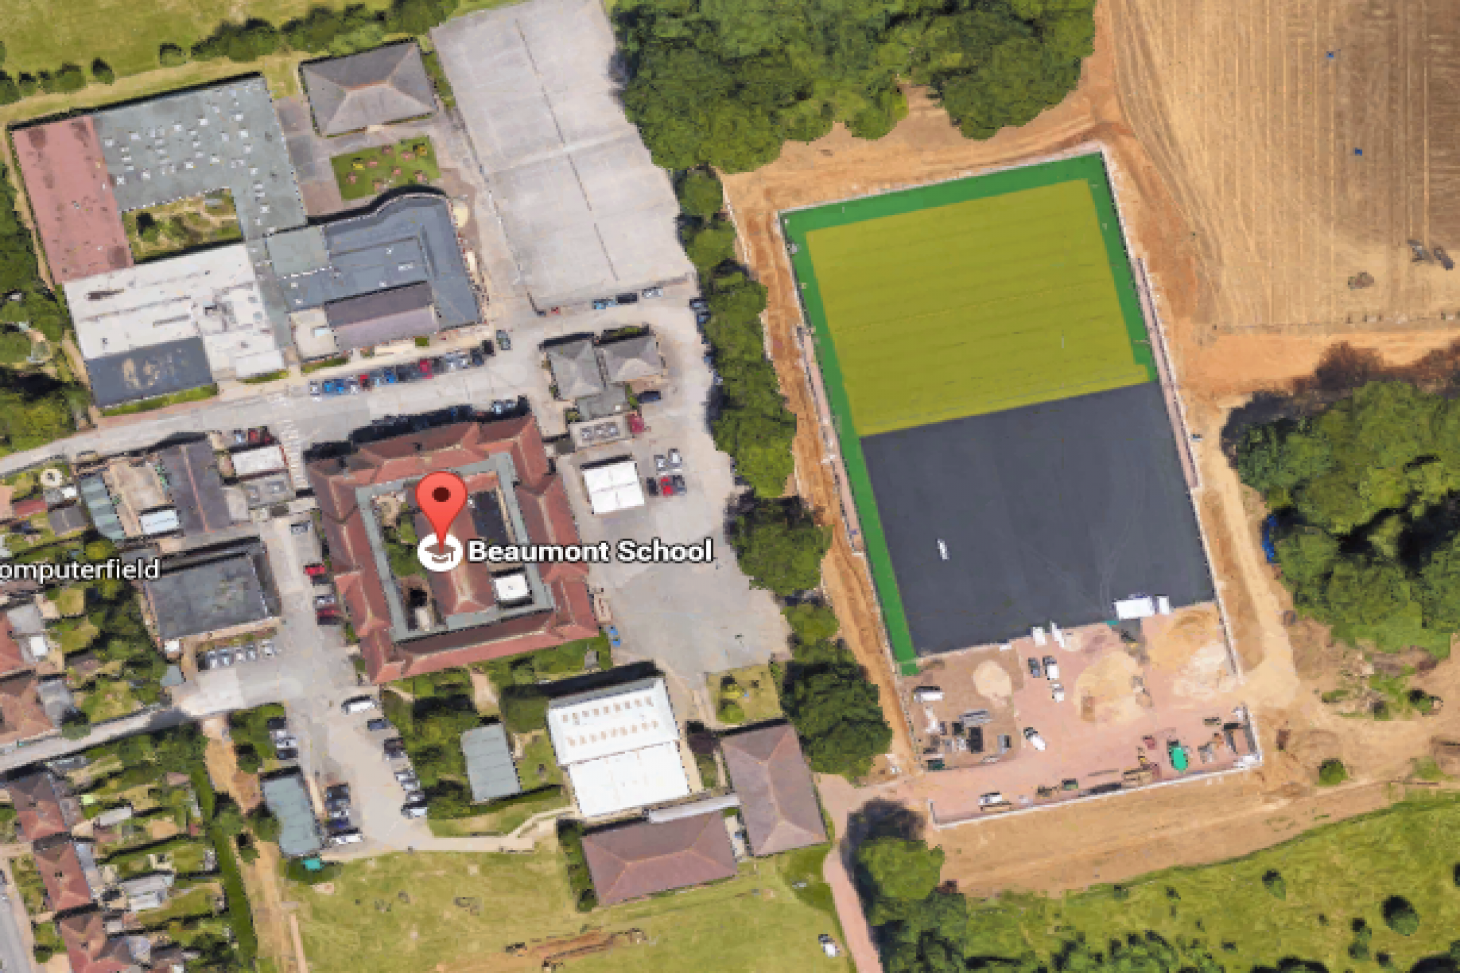 Beaumont School Outdoor | Hard (macadam) tennis court